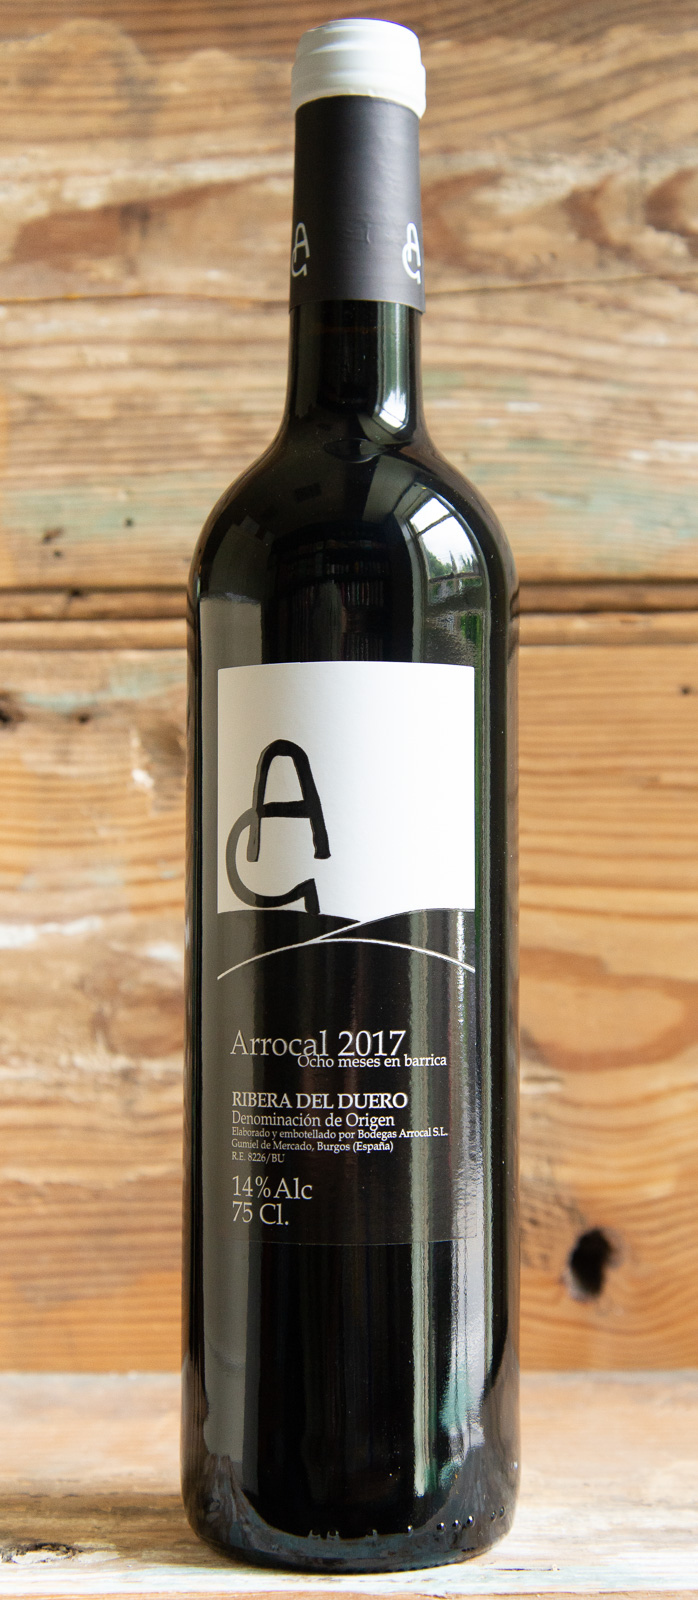 Bodegas Arrocal Ribera Del Duero 2017 - Origin: SpainRetail: $18.95 | Sale: $17.05Bodegas Arrocal is a winery where several generations work side by side embracing modern technique to produce stunning Old World wine. This quintessential example of Ribera del Duero features a pretty bouquet of plums and cherries, with a touch of herb. It has a solid foundation of spicy oak and is full-bodied and moderately tannic, with a fine core of well-balanced fruit on the finish.100% Tempranillo90 Points Vinous